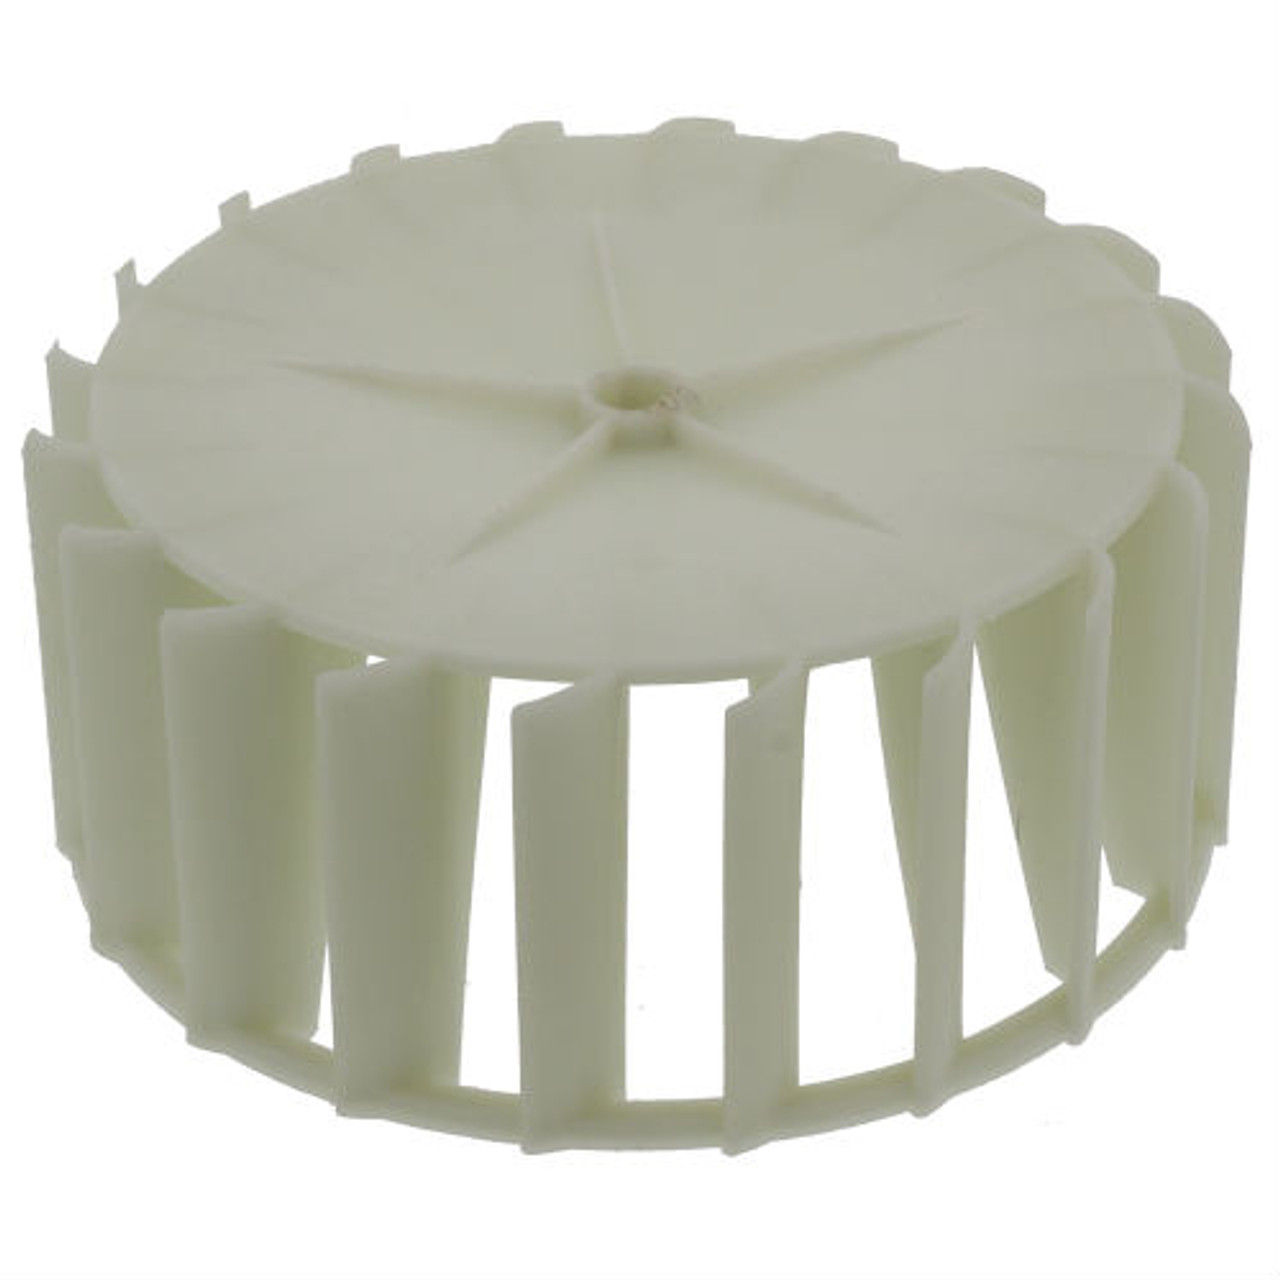 Compatible Lint Screen Filter for Maytag LDE7304AGL Maytag LDE7304AGM Maytag LDE7314ACE Maytag LDE7314ACL Maytag LDE7314ACM Dryers